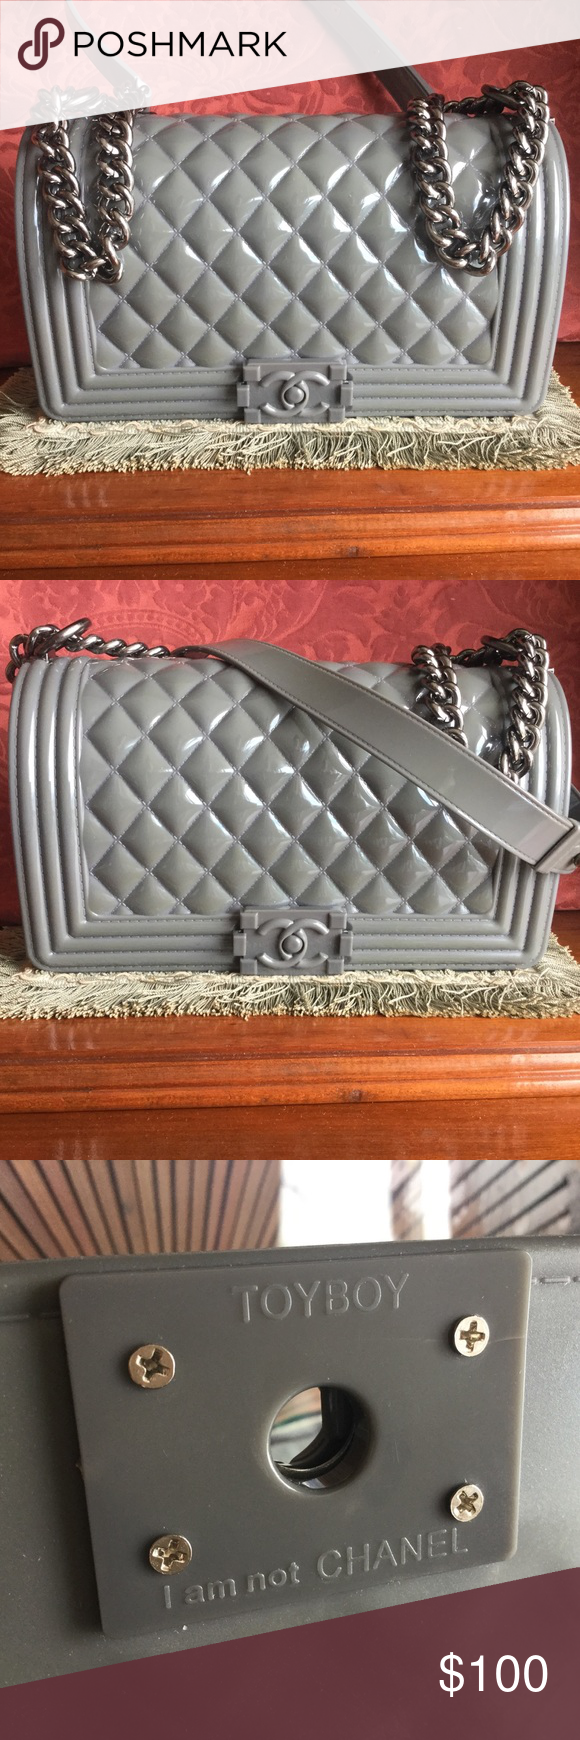 3651b8ec1e16 Jelly Toyboy I am not Chanel Bag Up for sale is my Jelly Toyboy I am not  Chanel handbag which can be used as a cross body or a handbag with chain ...